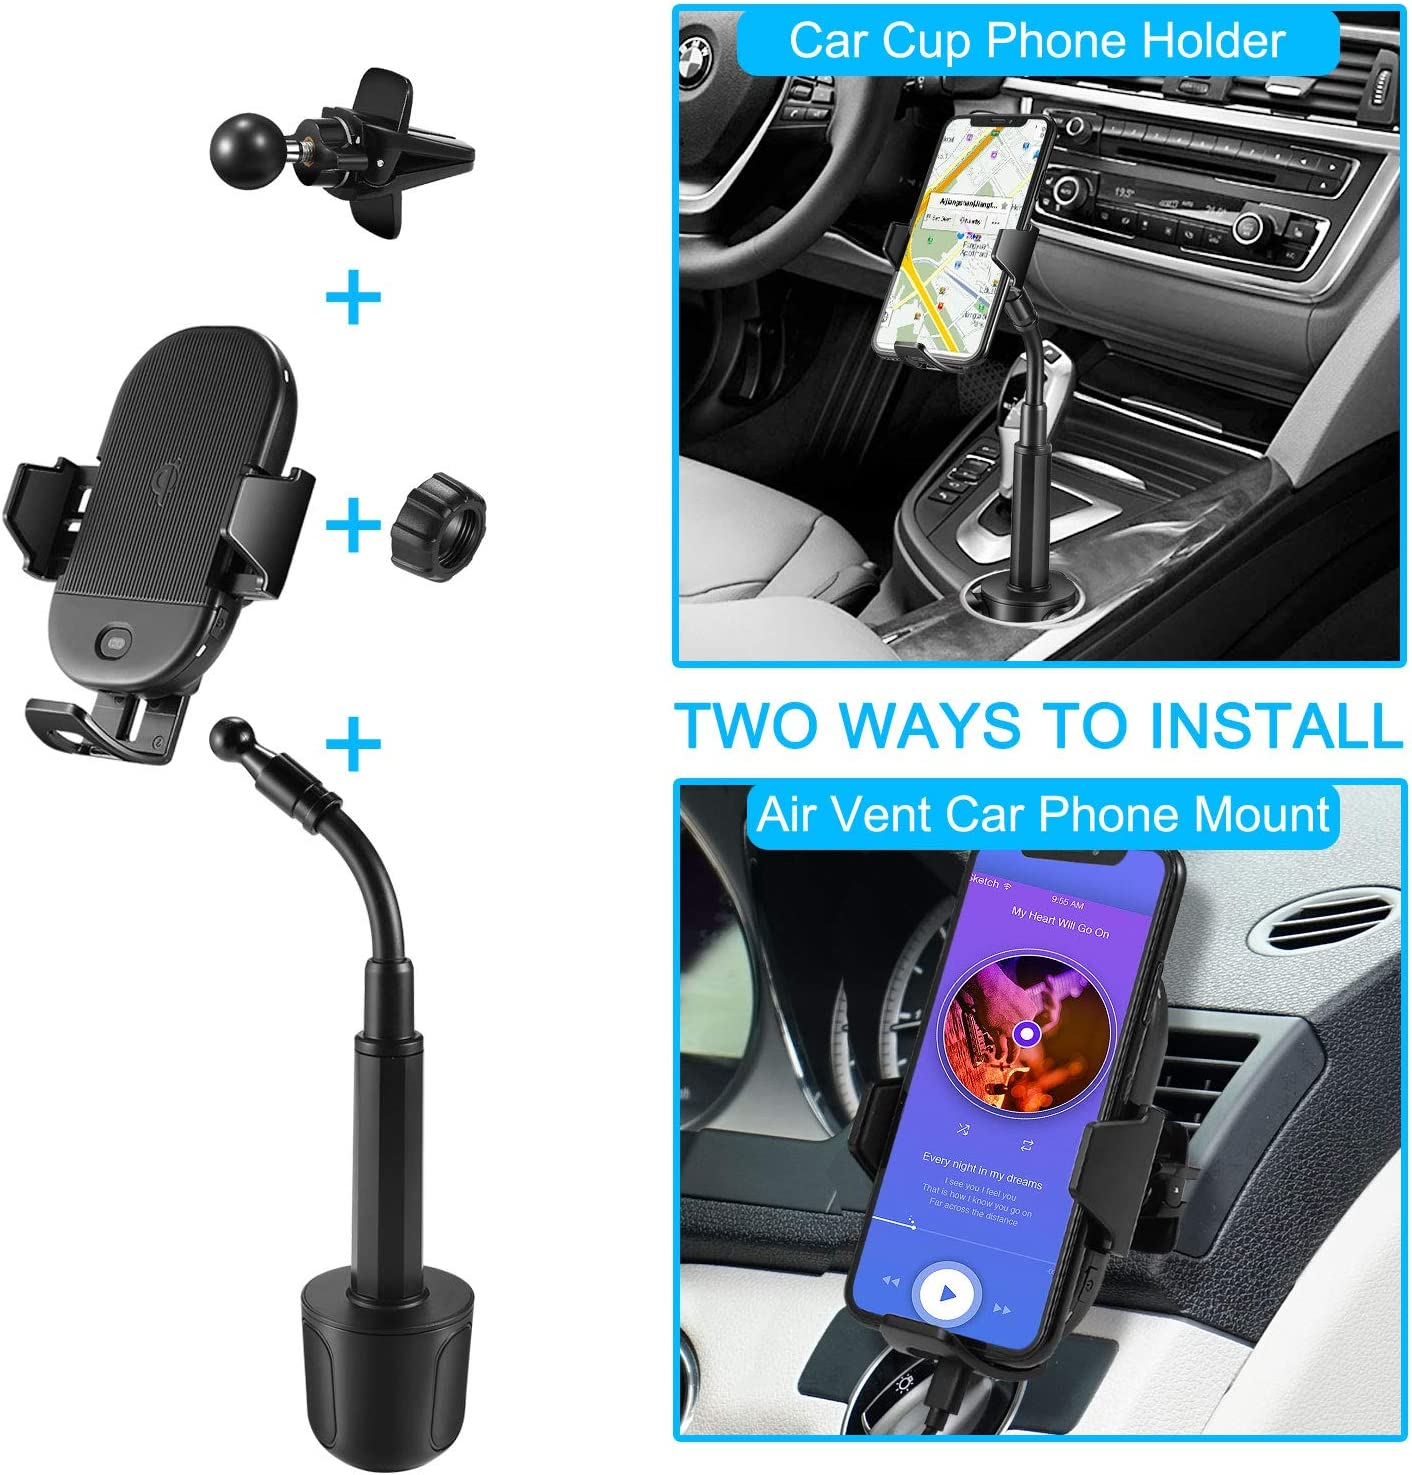 Max 15W Qi Wireless Car Charger Cup Phone Holder//Air Vent Phone Holder Compatible with iPhone Samsung and Other Qi Smartphone Lorima Cup Holder Phone Mount Wireless Charger